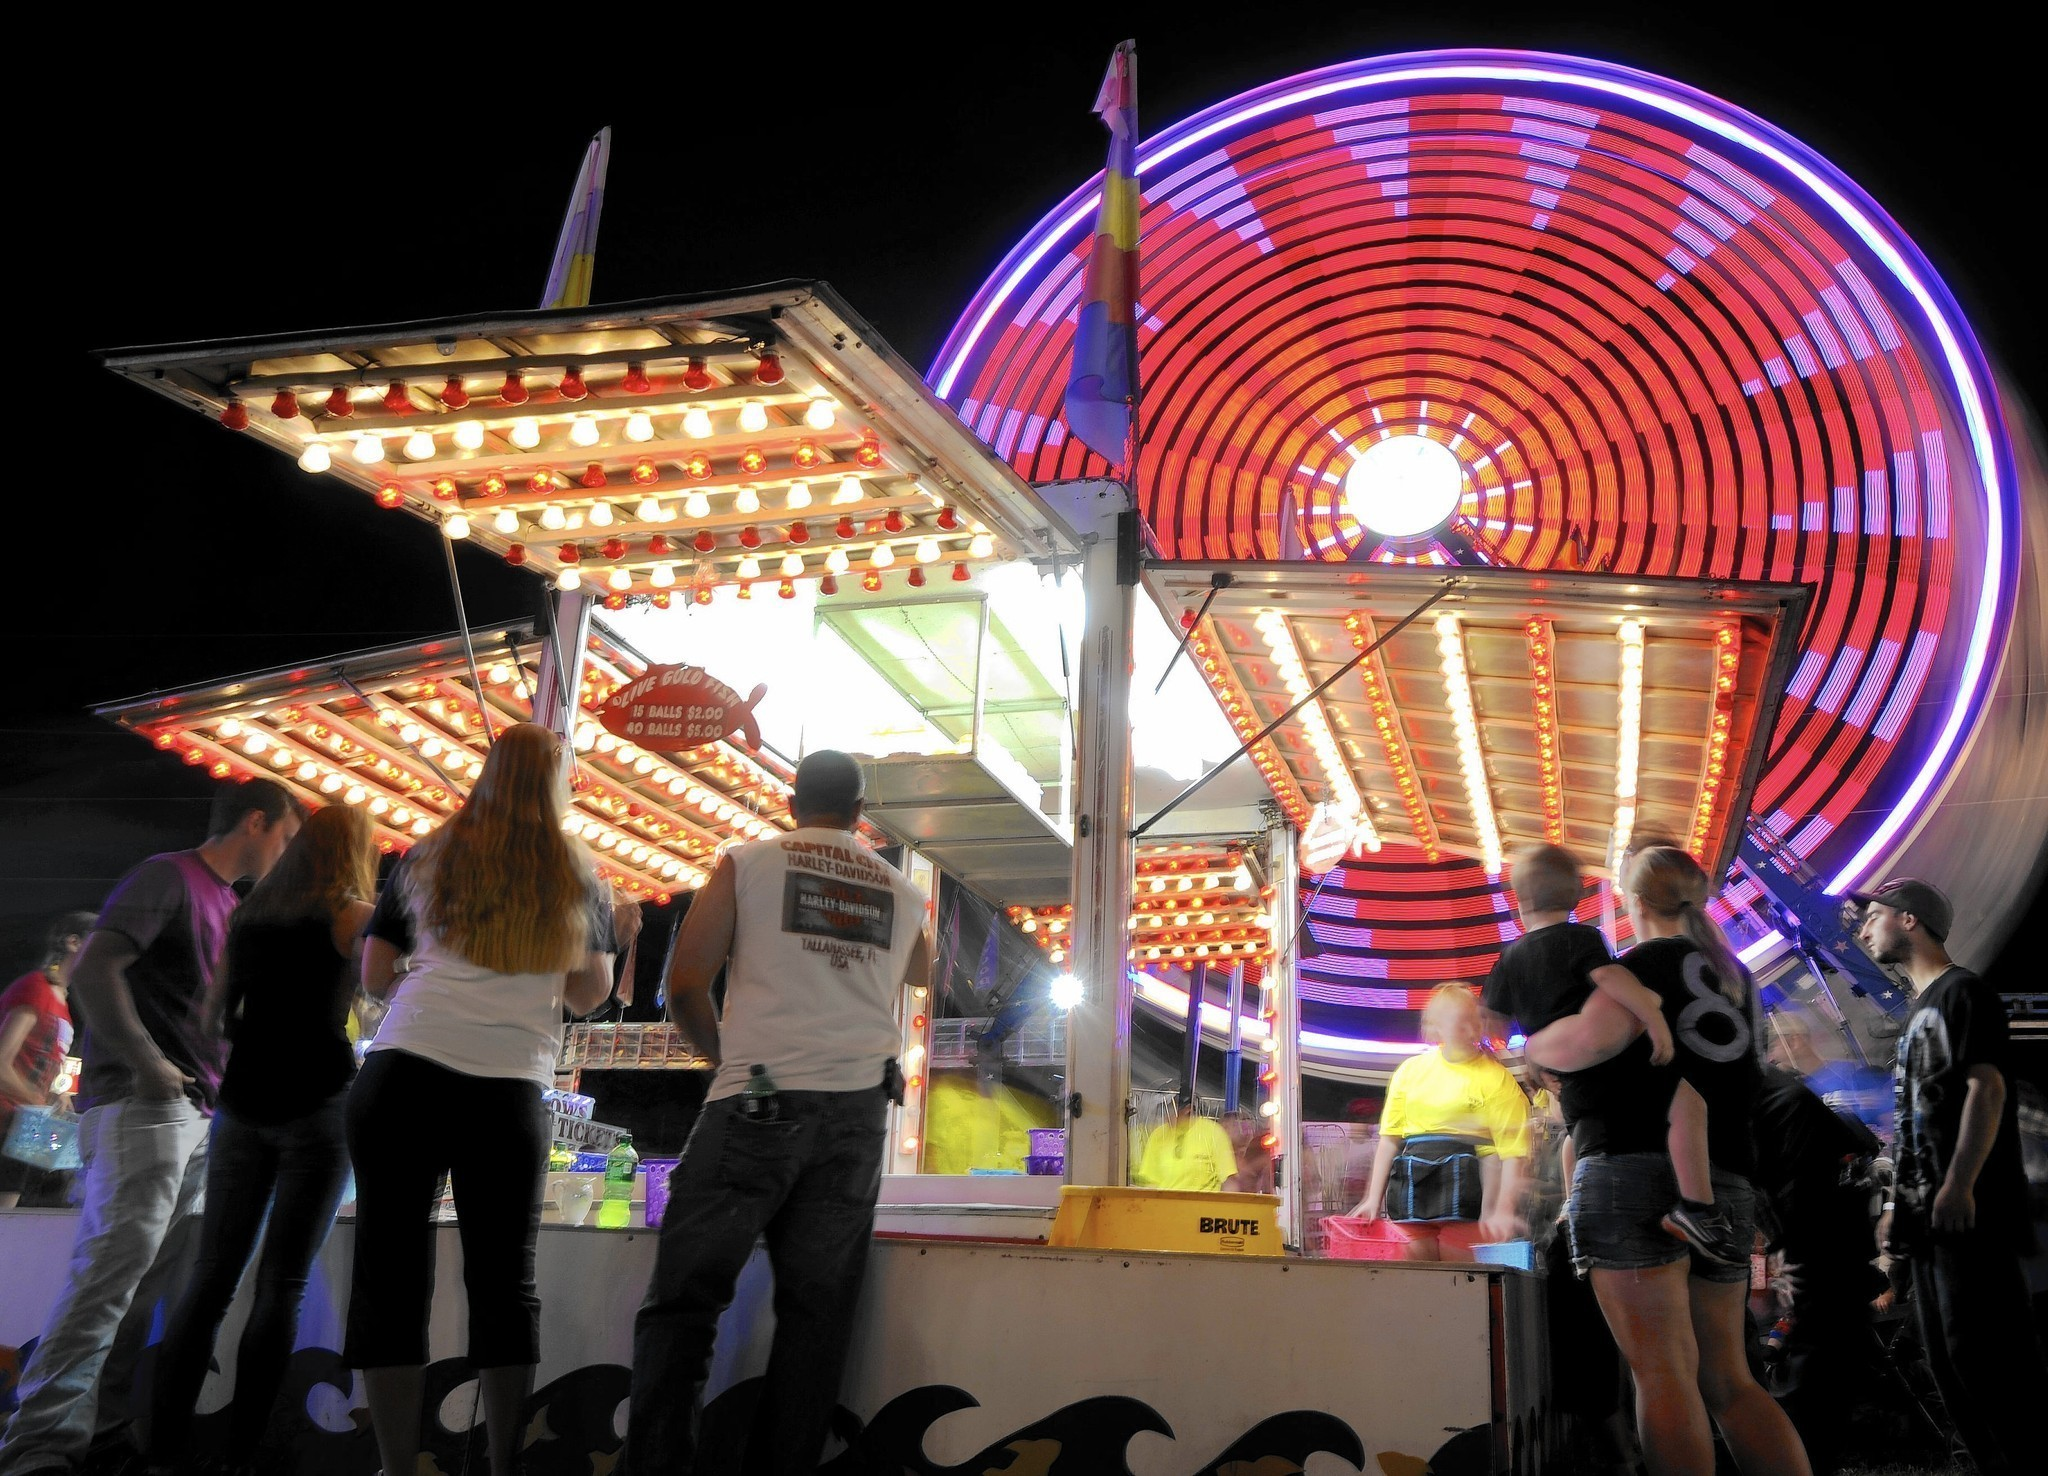 http://www.carrollcountytimes.com/entertainment/ph-cc-fire-carnival-20160524-story.html